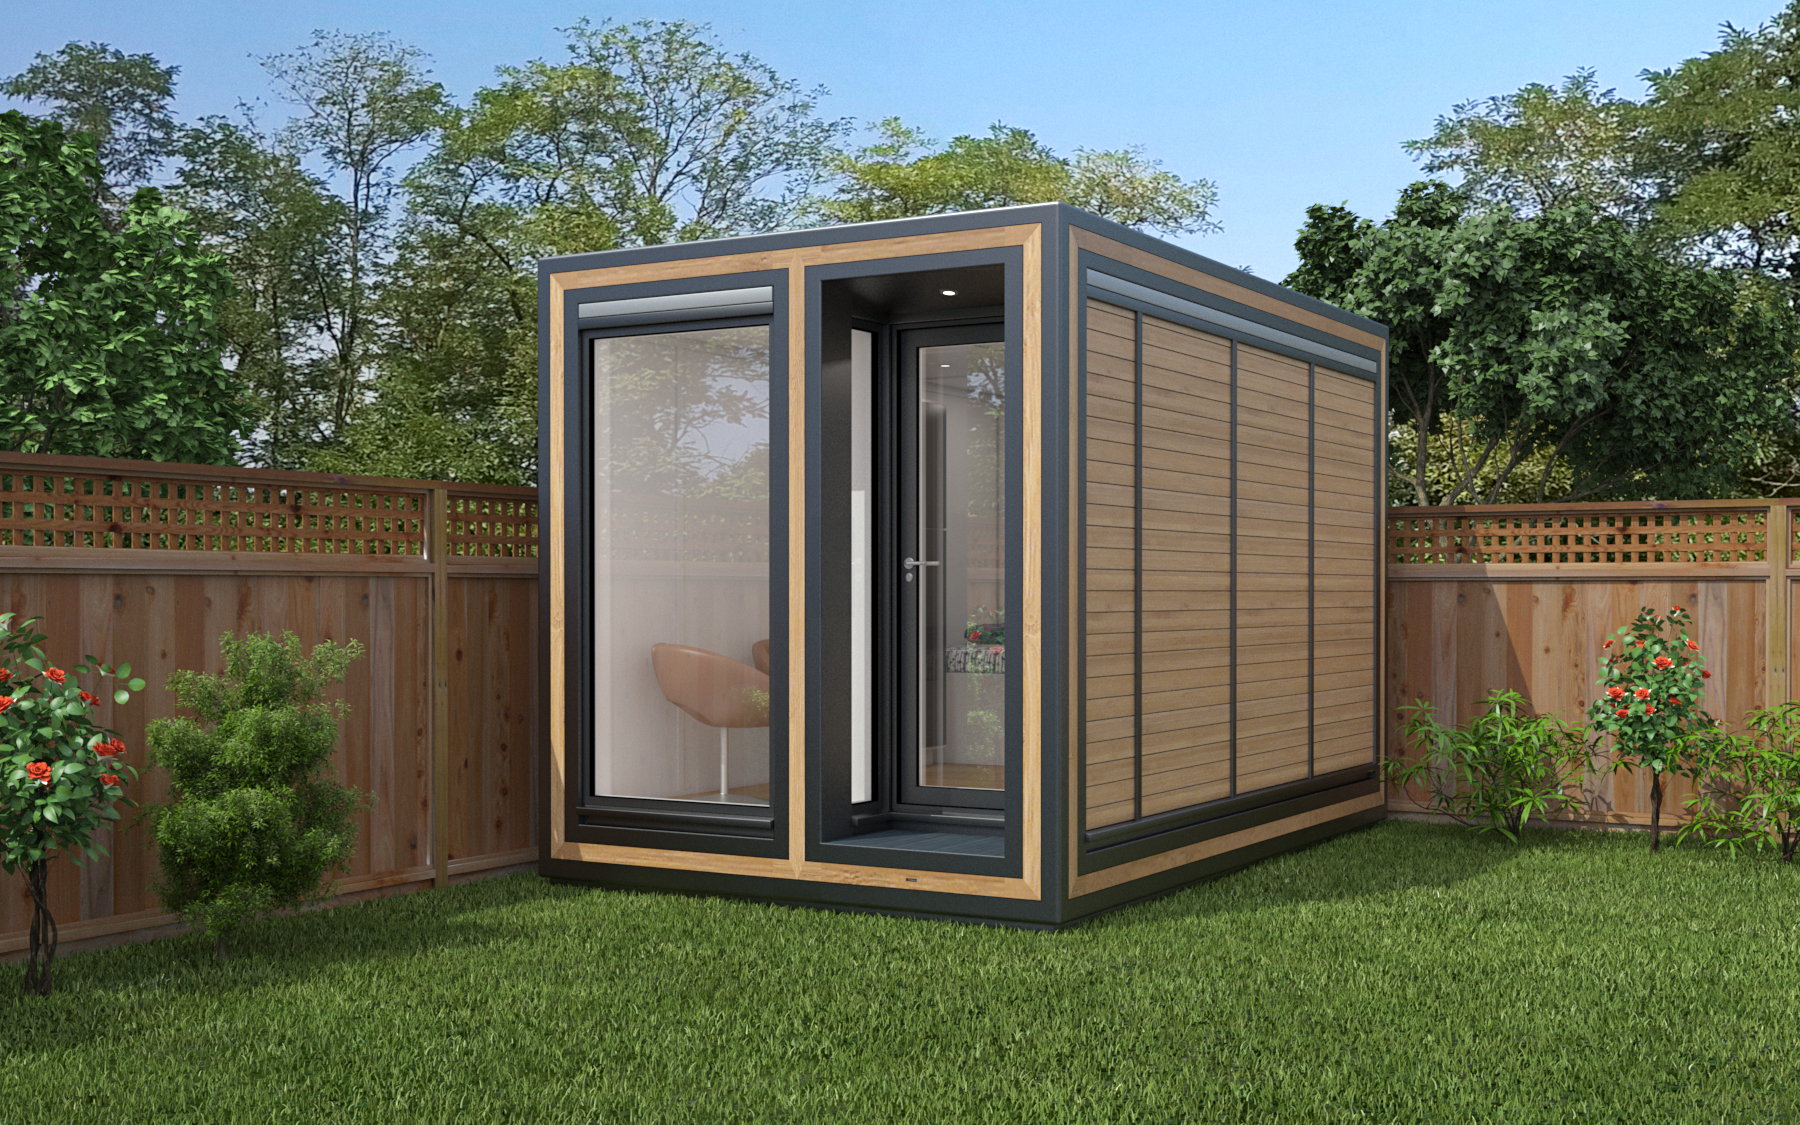 ZEDBOX 235  (2 x 3.5)  Internal Size: 2117x 3746  External Size: 2587 x 4216  Bed Options: Yes (Single)  Kitchen Options: N/A  Wet Room Options: Yes  Portico: No  Price:  £18,000    Optional Extras    Request Zedbox Catalogue